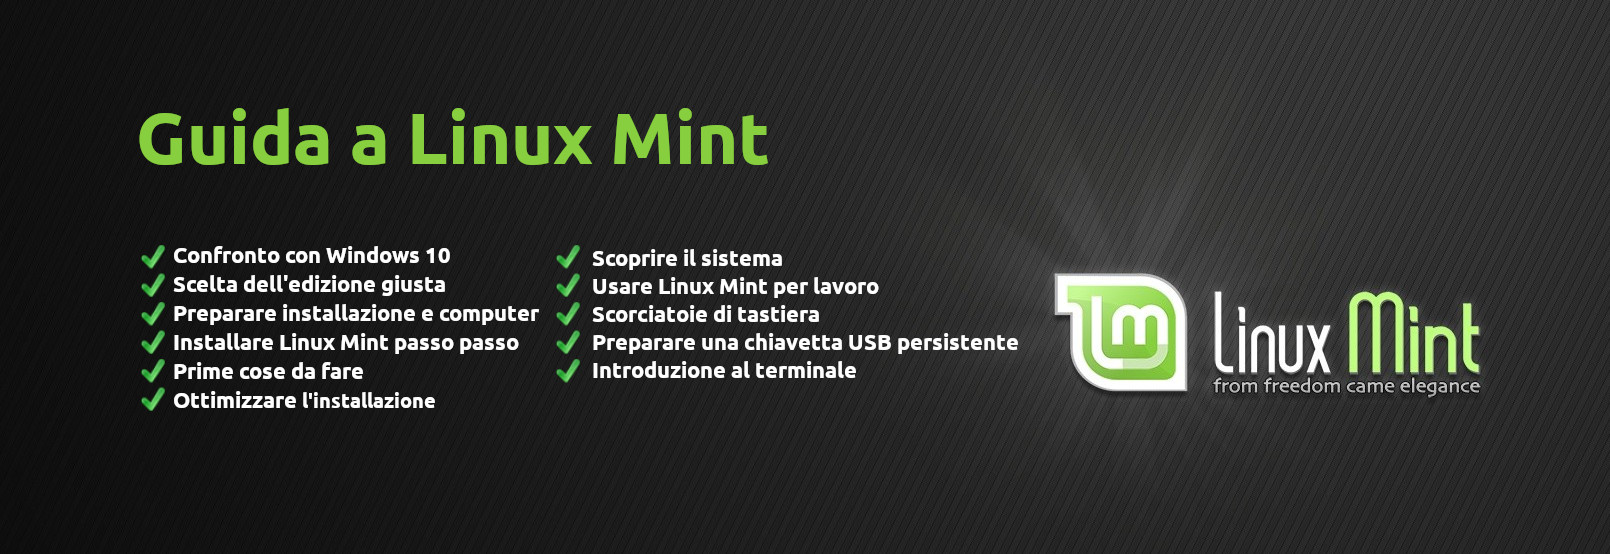 guida a linux mint 2020 in italiano